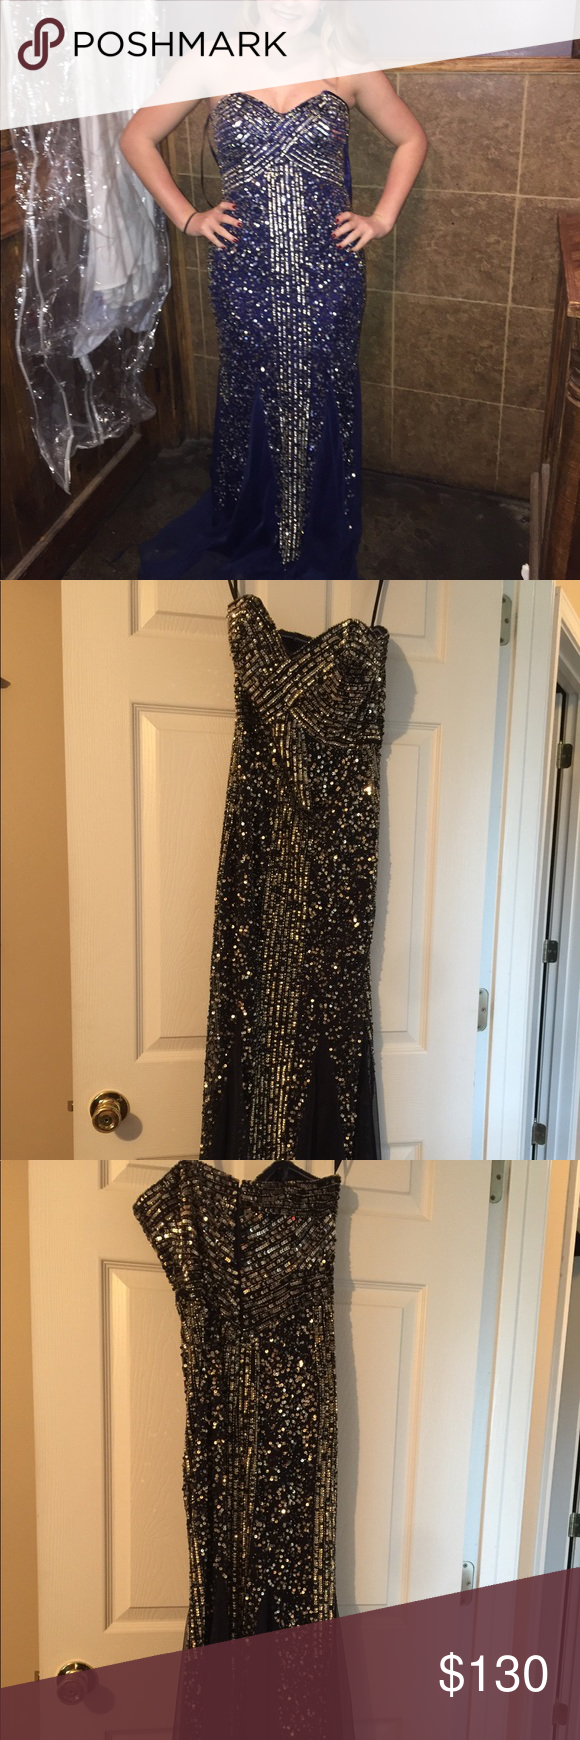 Stunning navy sequin prom dress this is a beautiful form fitting